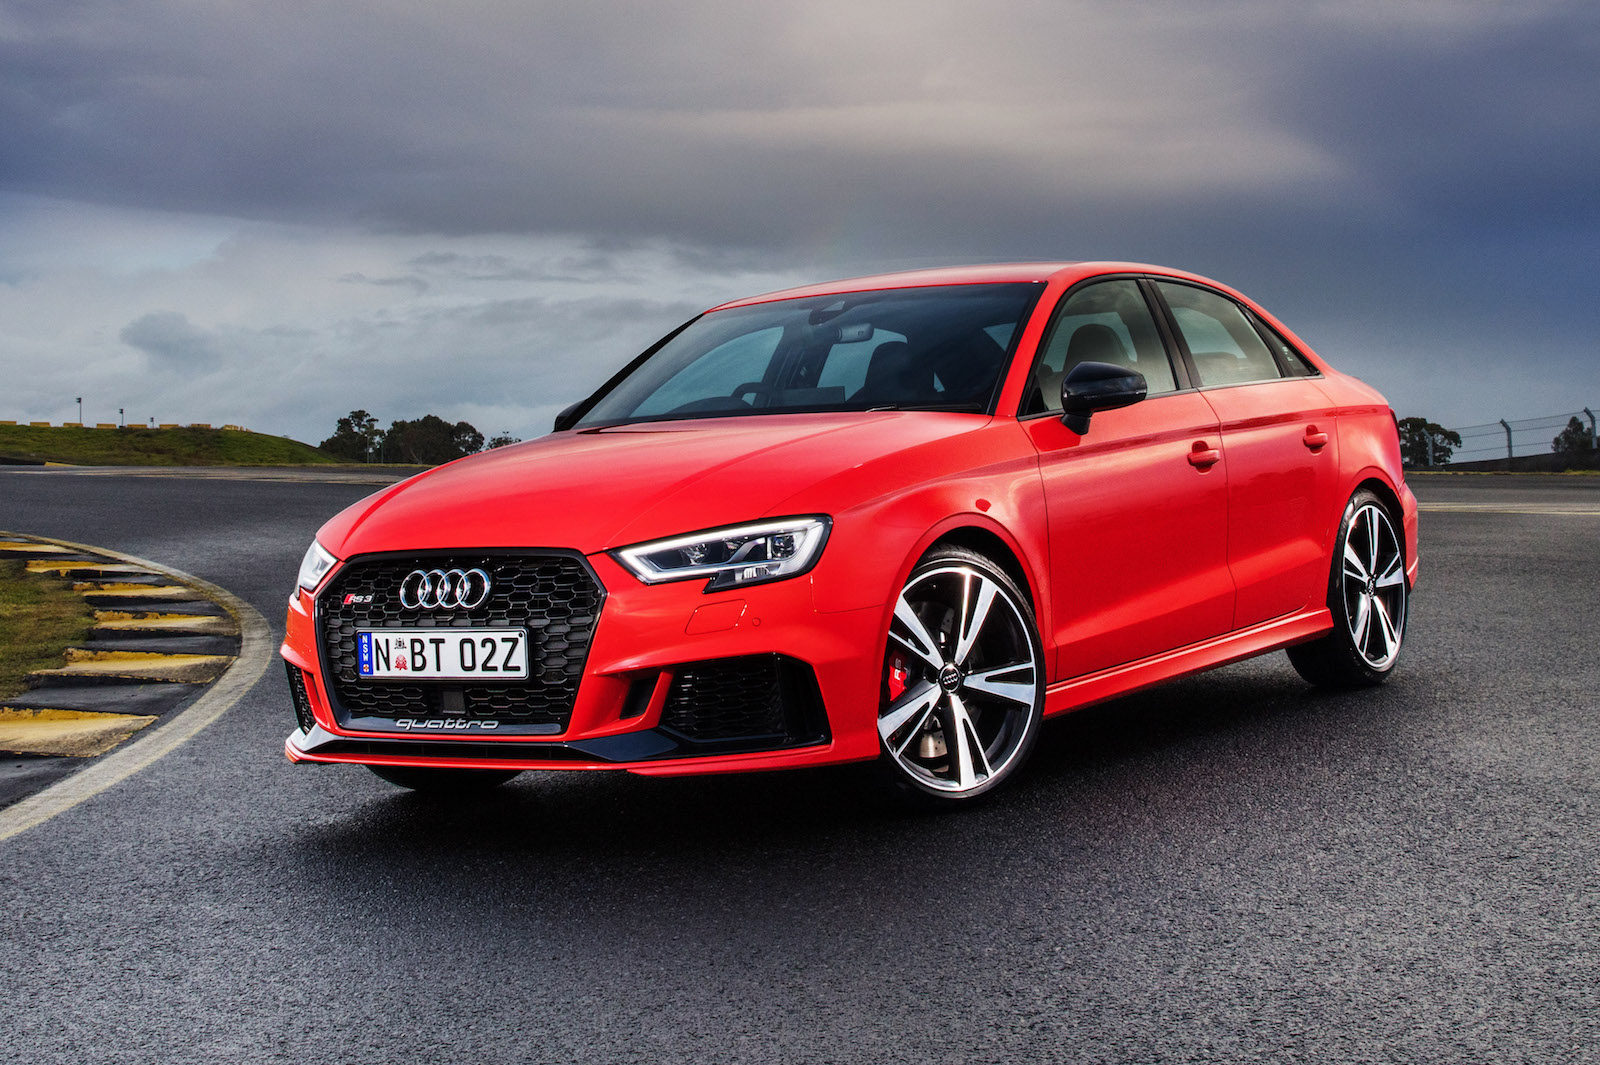 new audi rs 3 sedan now on sale in australia from 84 900 performancedrive. Black Bedroom Furniture Sets. Home Design Ideas